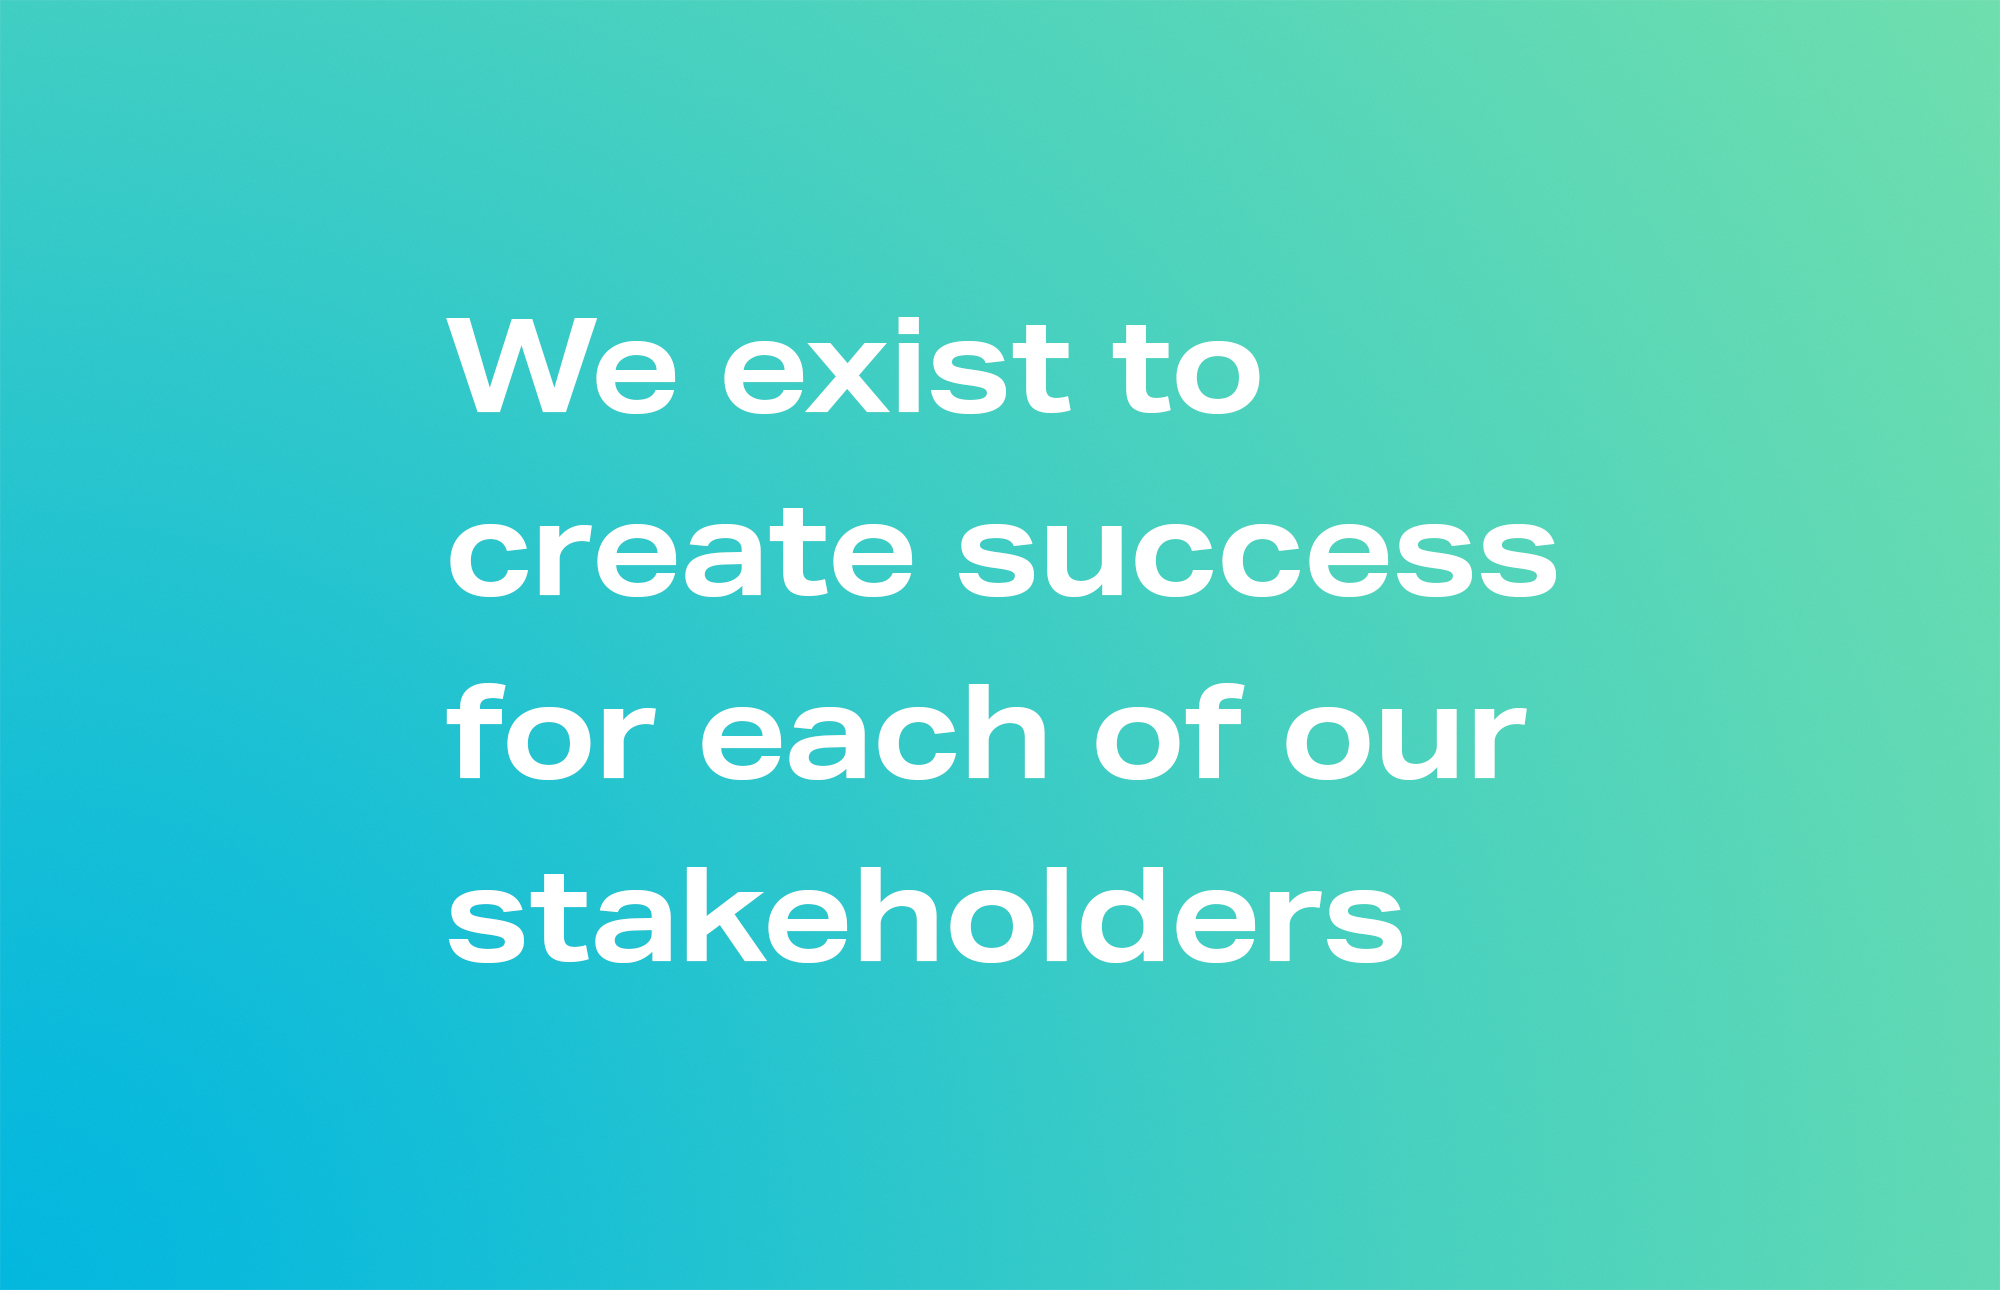 We exist to create success for each of our stakeholders